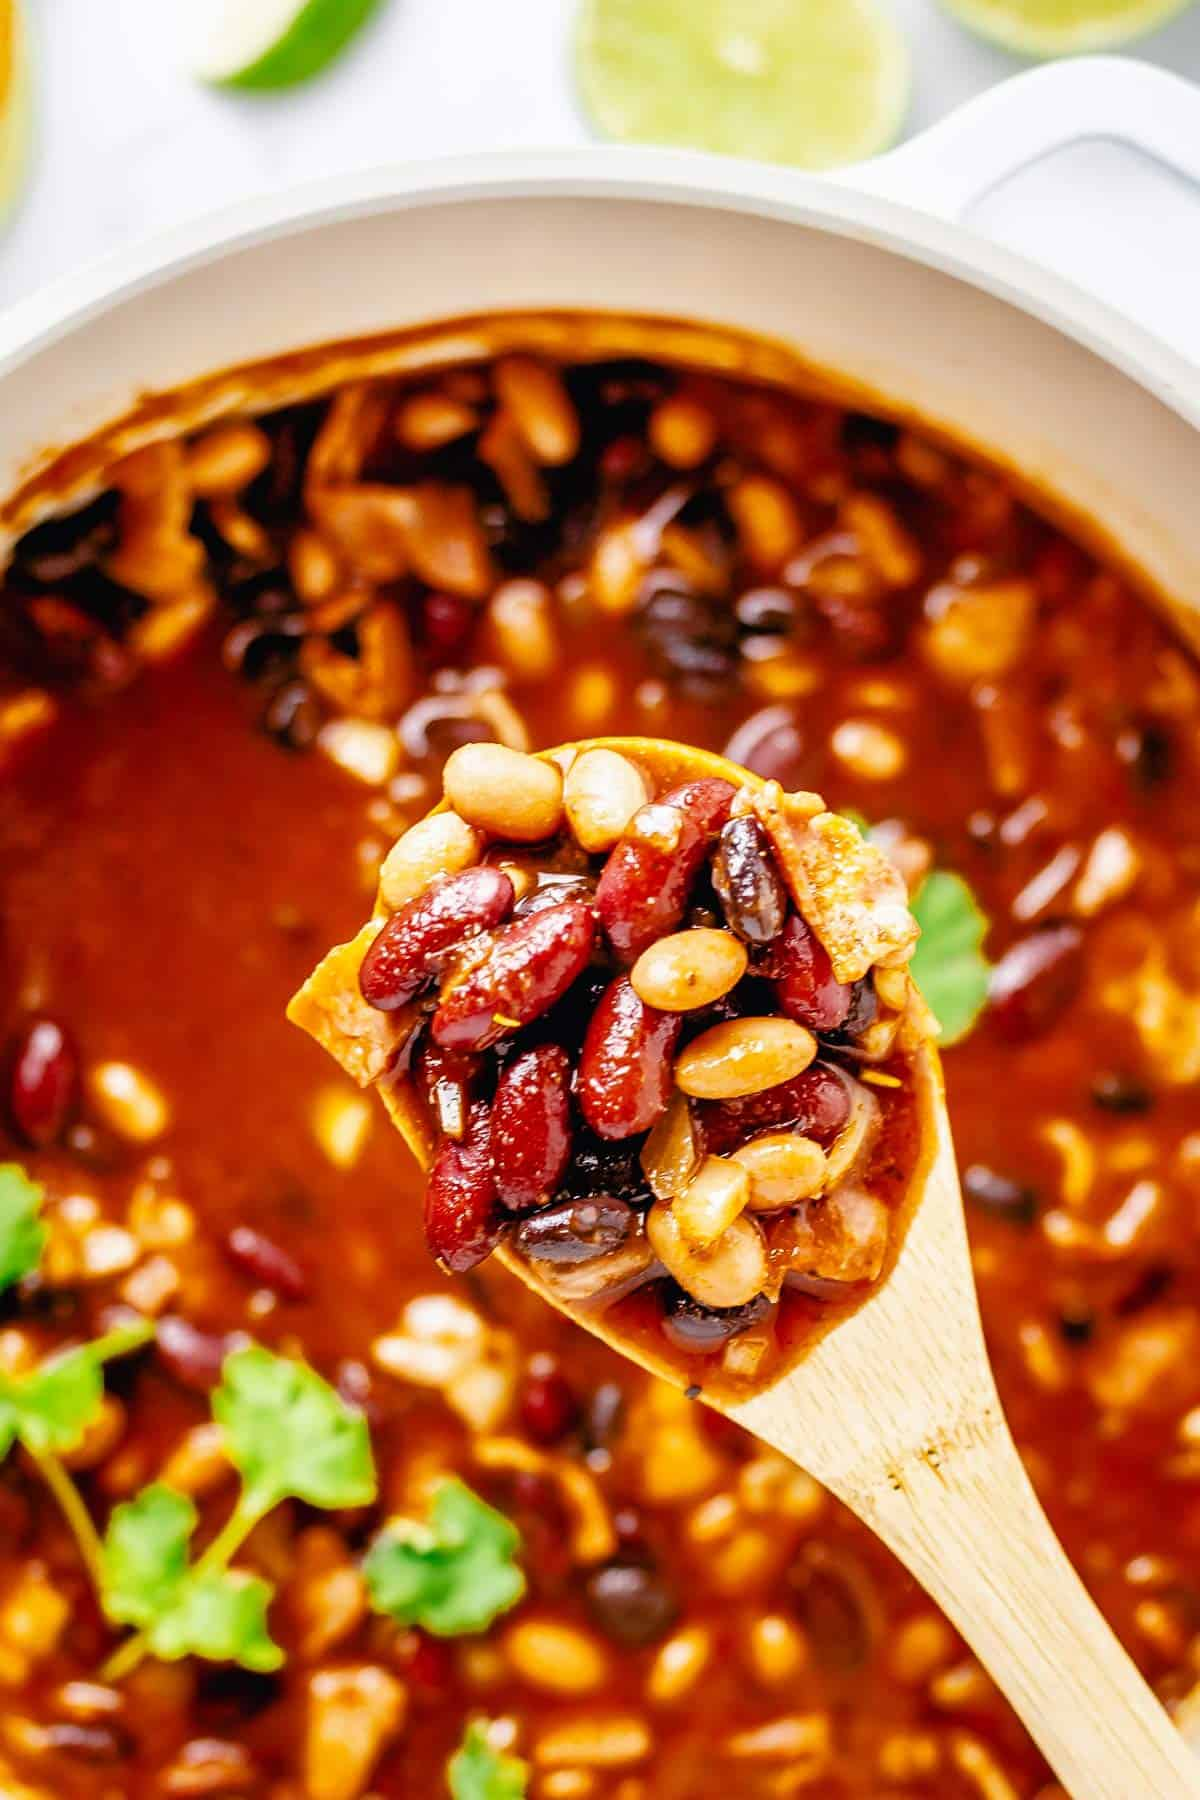 close up shot of cooked beans in tomato sauce on a wooden spoon